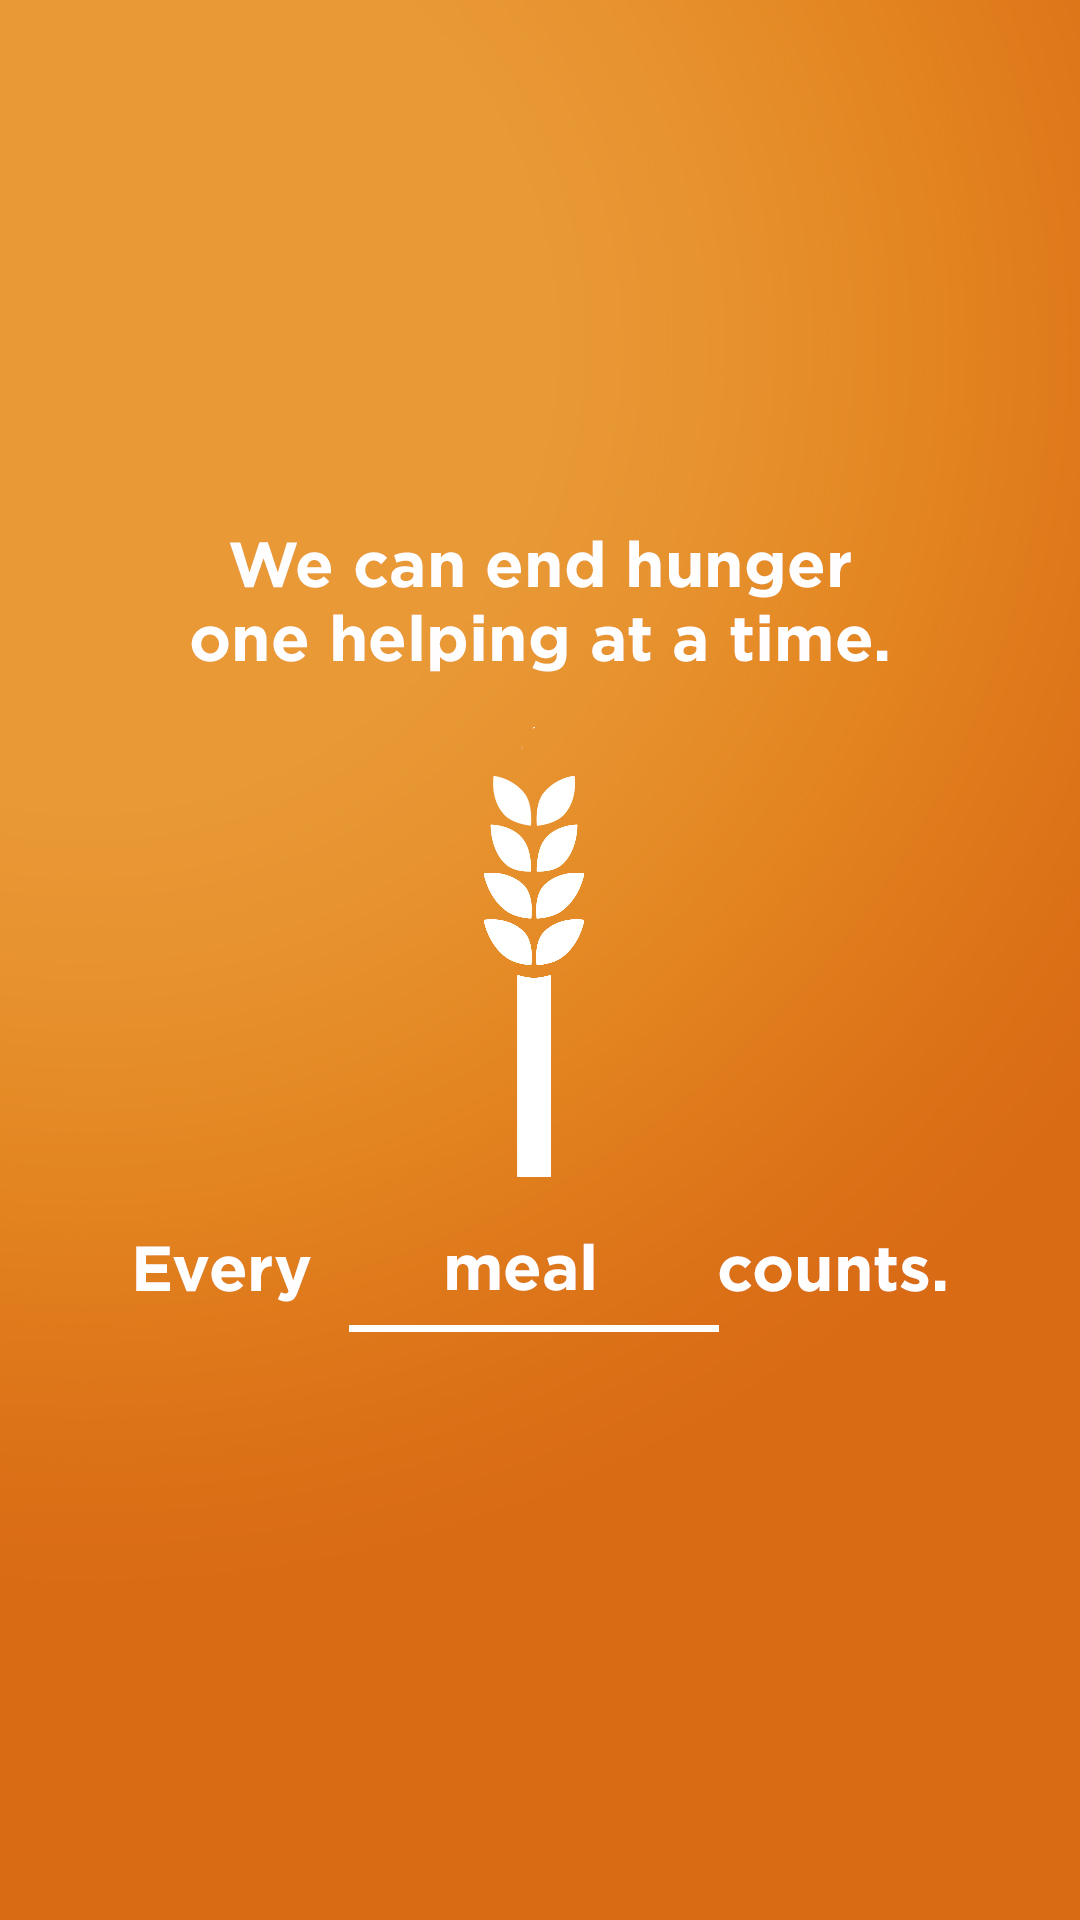 We can end hunger - Meal